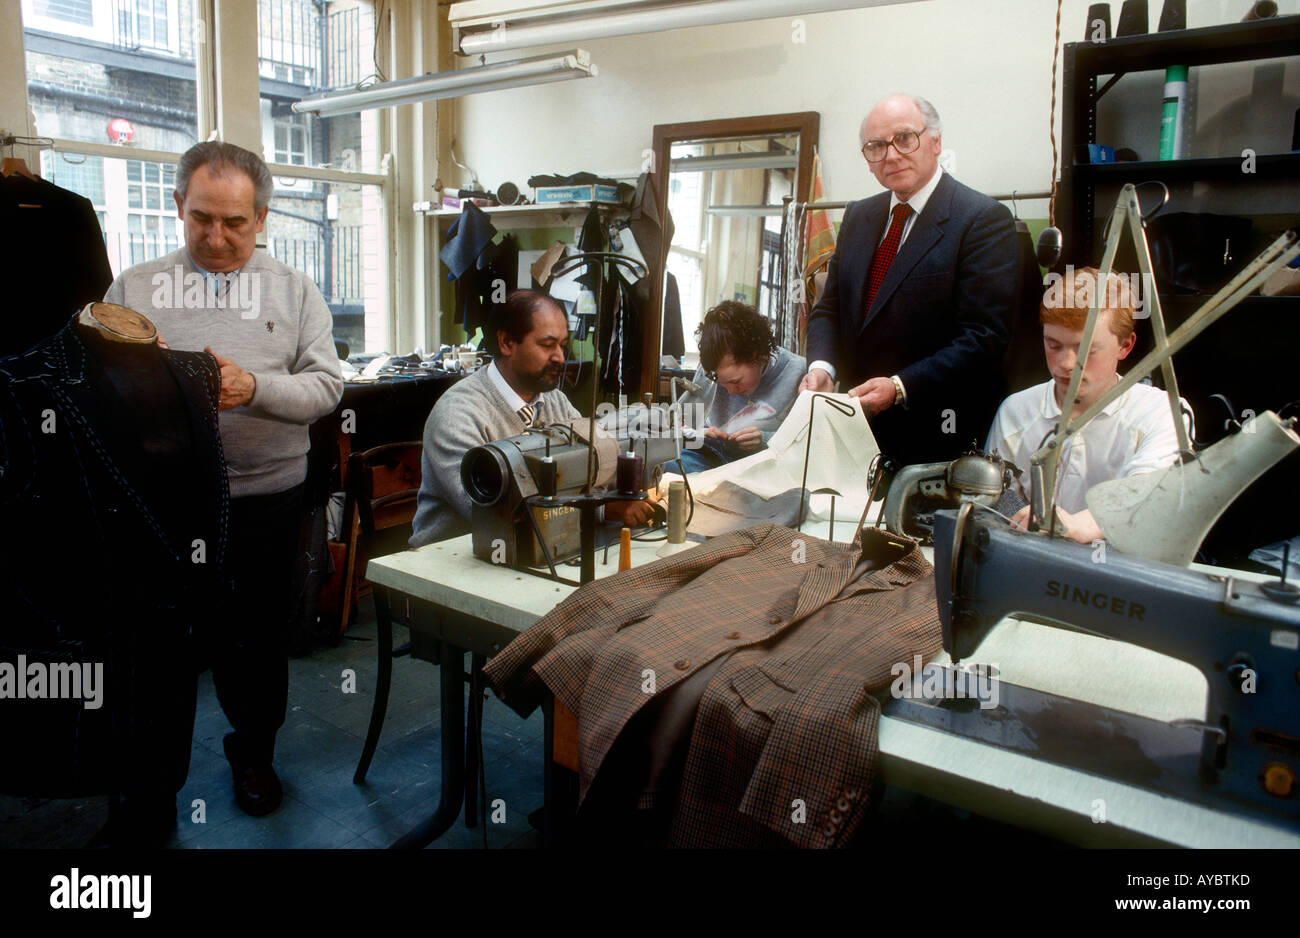 Savile Row Robert Bright Master Tailor seen here with his staff upstairs in the bespoke tailoring shop Wells of Mayfair London - Stock Image